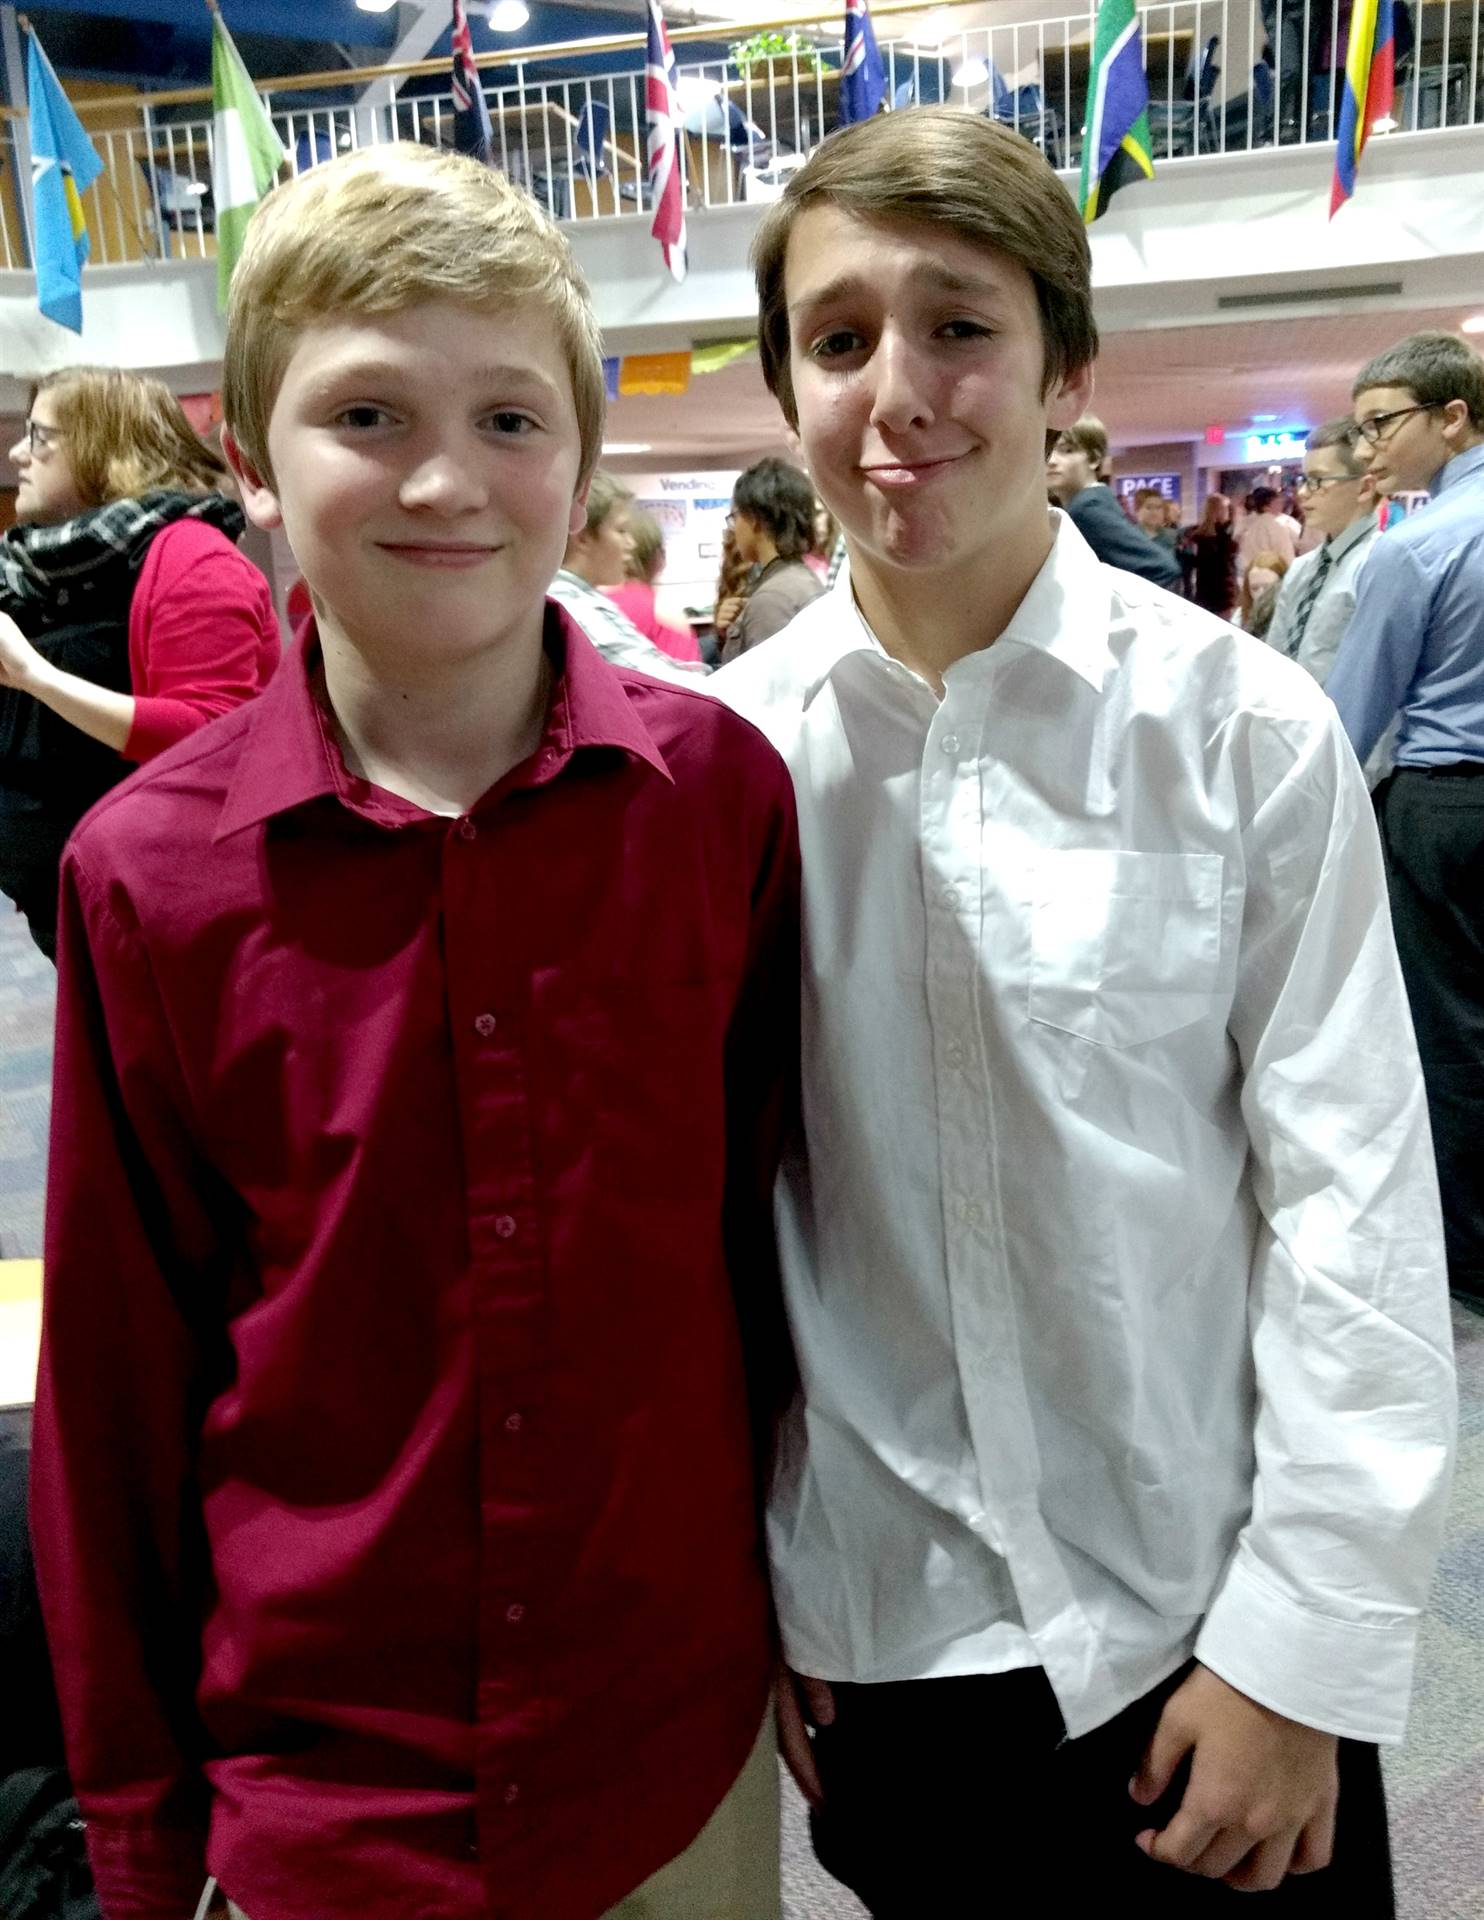 Two boys getting ready to participate in the North Central Iowa ICDA Honor Choir